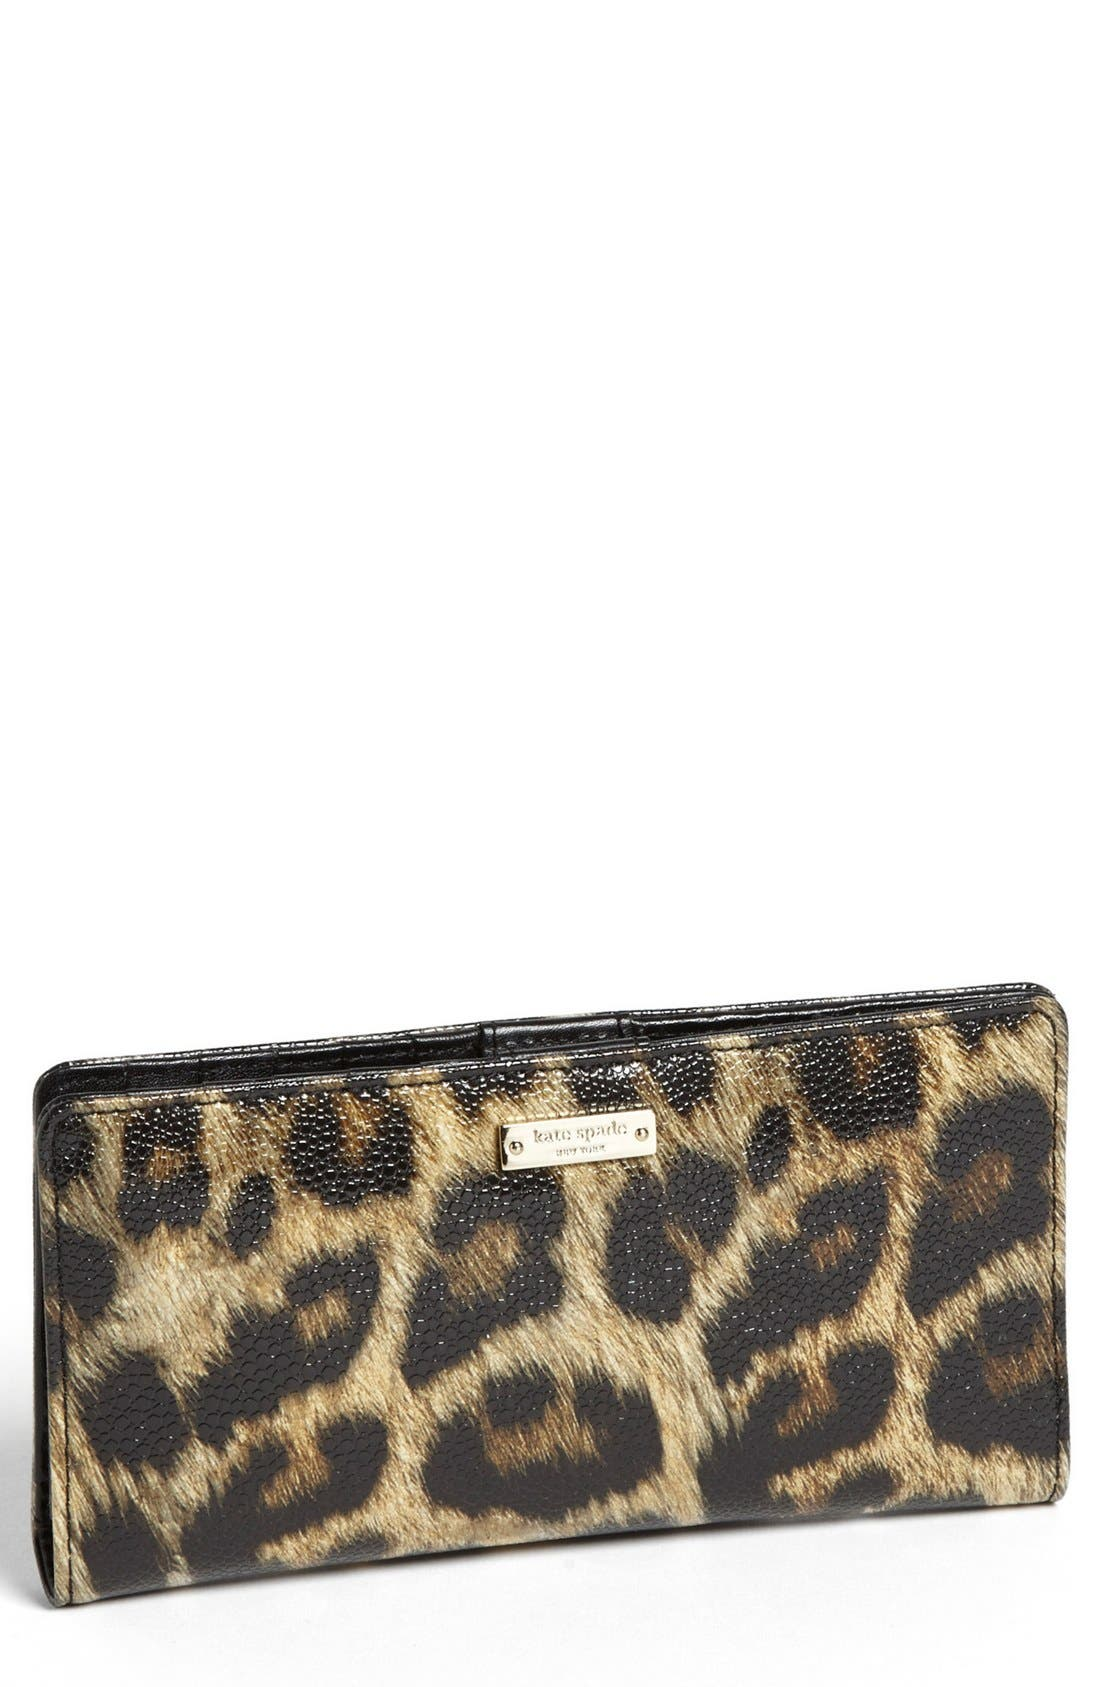 Alternate Image 1 Selected - kate spade new york 'cedar street animal - stacey' wallet